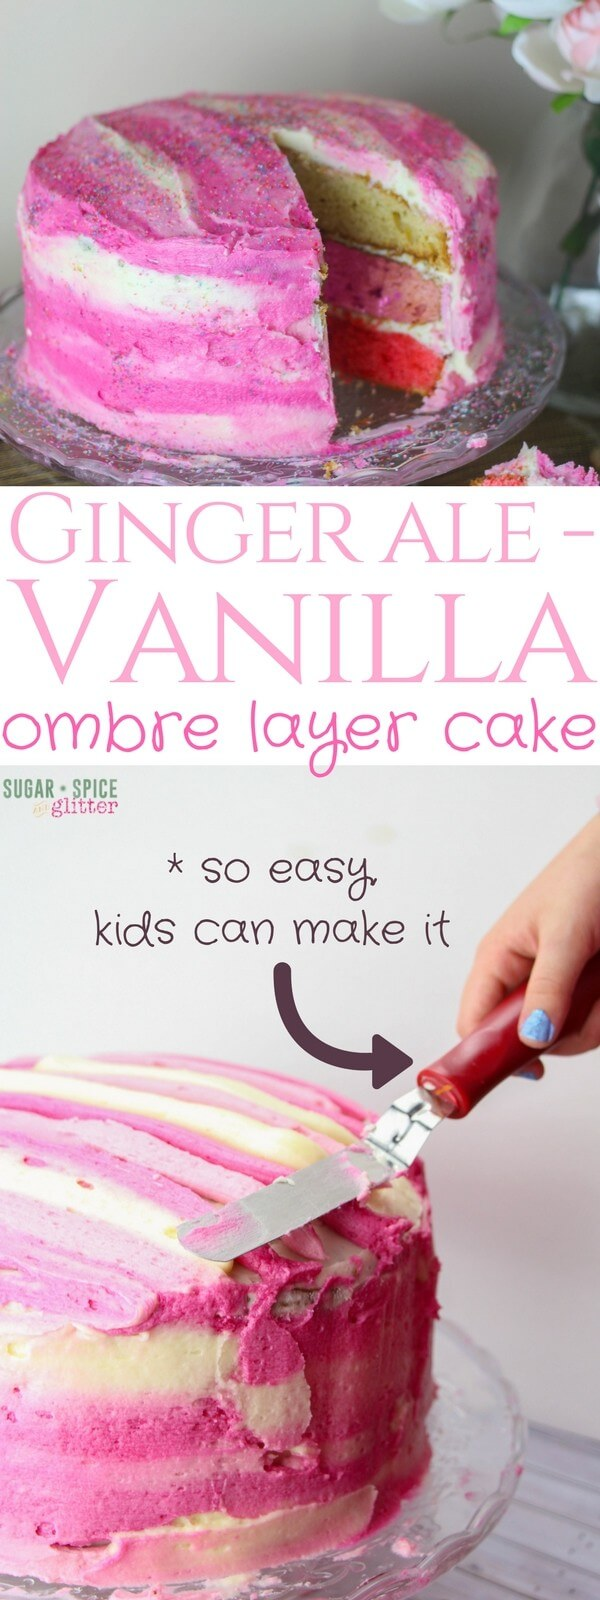 This GINGER ALE VANILLA cake tastes AMAZING and looks gorgeous at any occasion - and would you believe that it's so easy, your kids can help with every step? Underneath that cute, watercolor-effect ginger ale vanilla buttercream is an unexpected pink ombre layer cake that tastes like a mix of ginger ale and cream soda